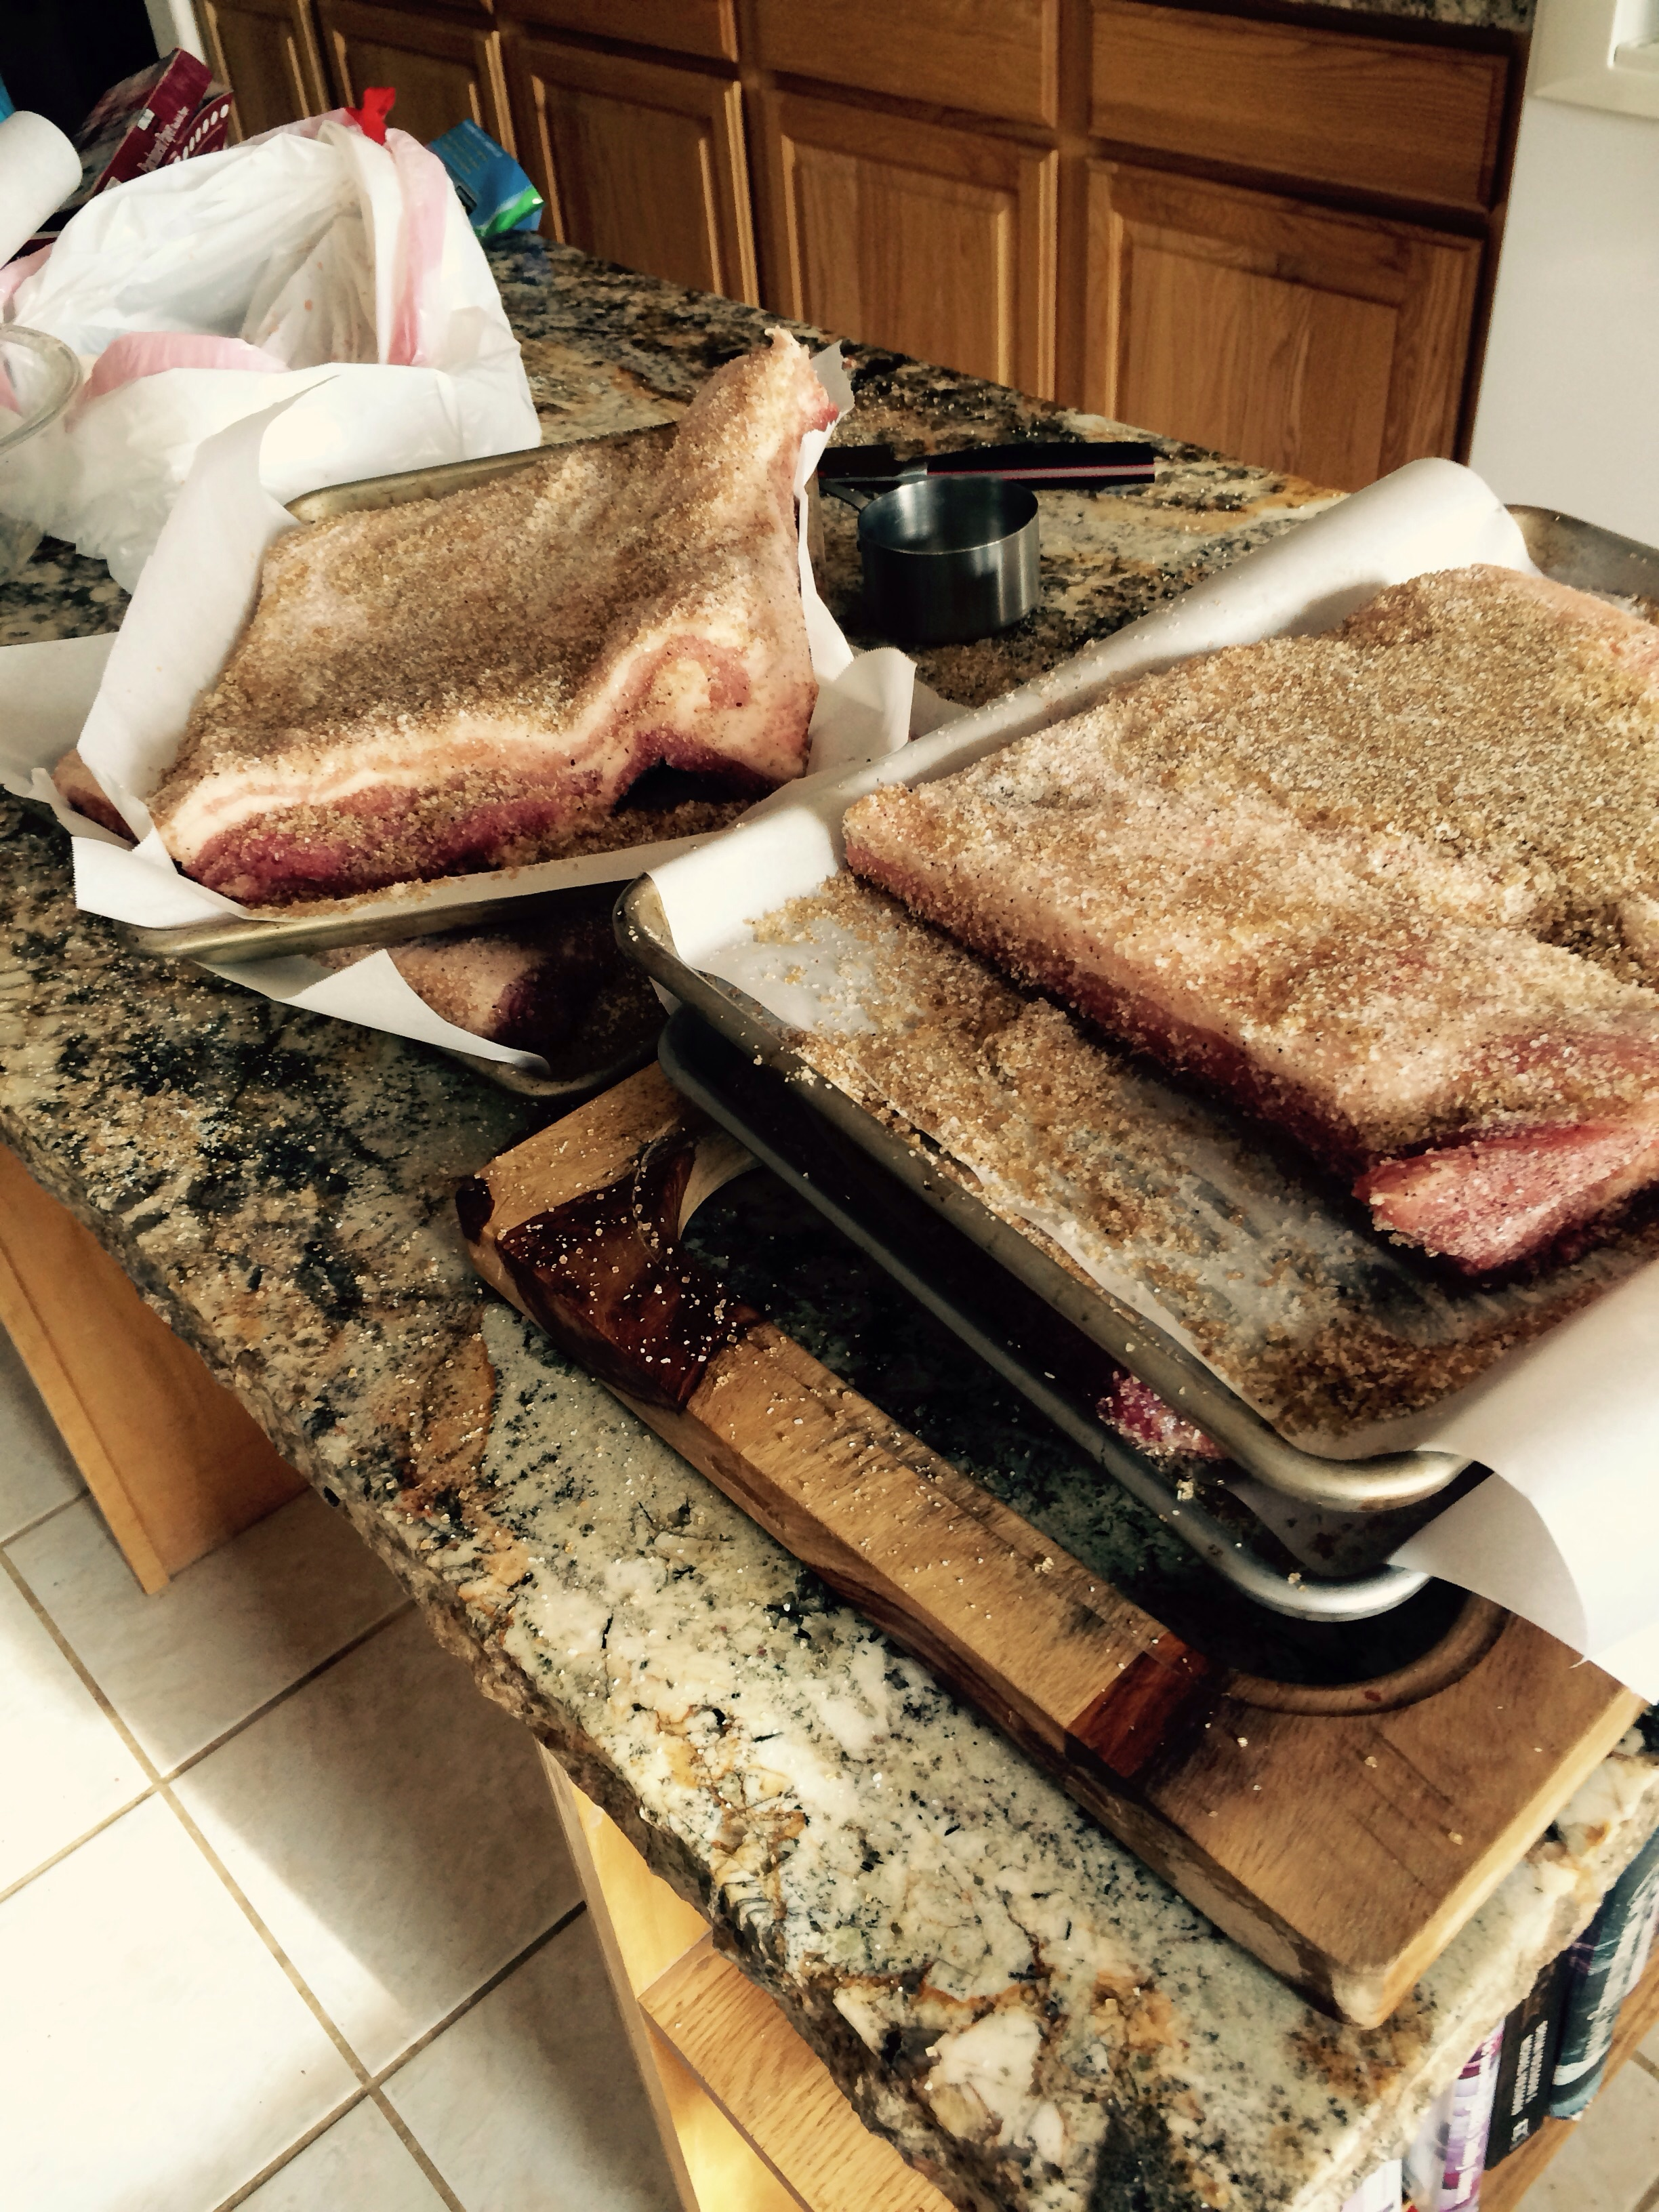 We try and use as much the whole animal as possible I am organic curing 30 pounds of beacon and making broth with pork bones